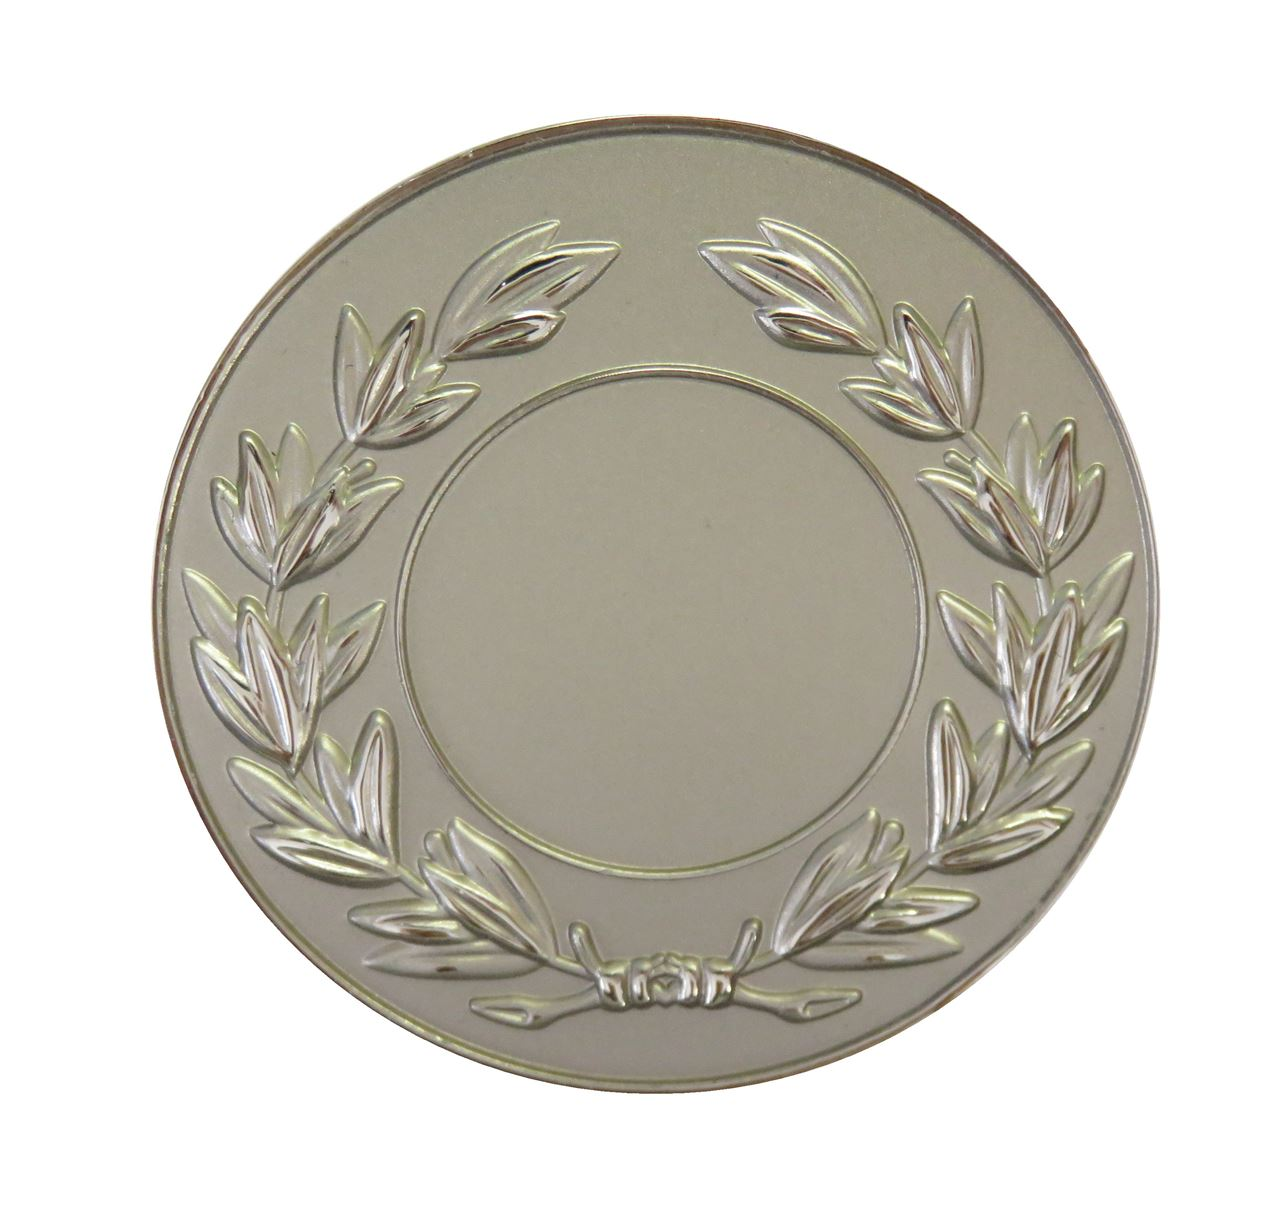 Silver Frosted Laurel Medal (size: 50mm) - LAUF